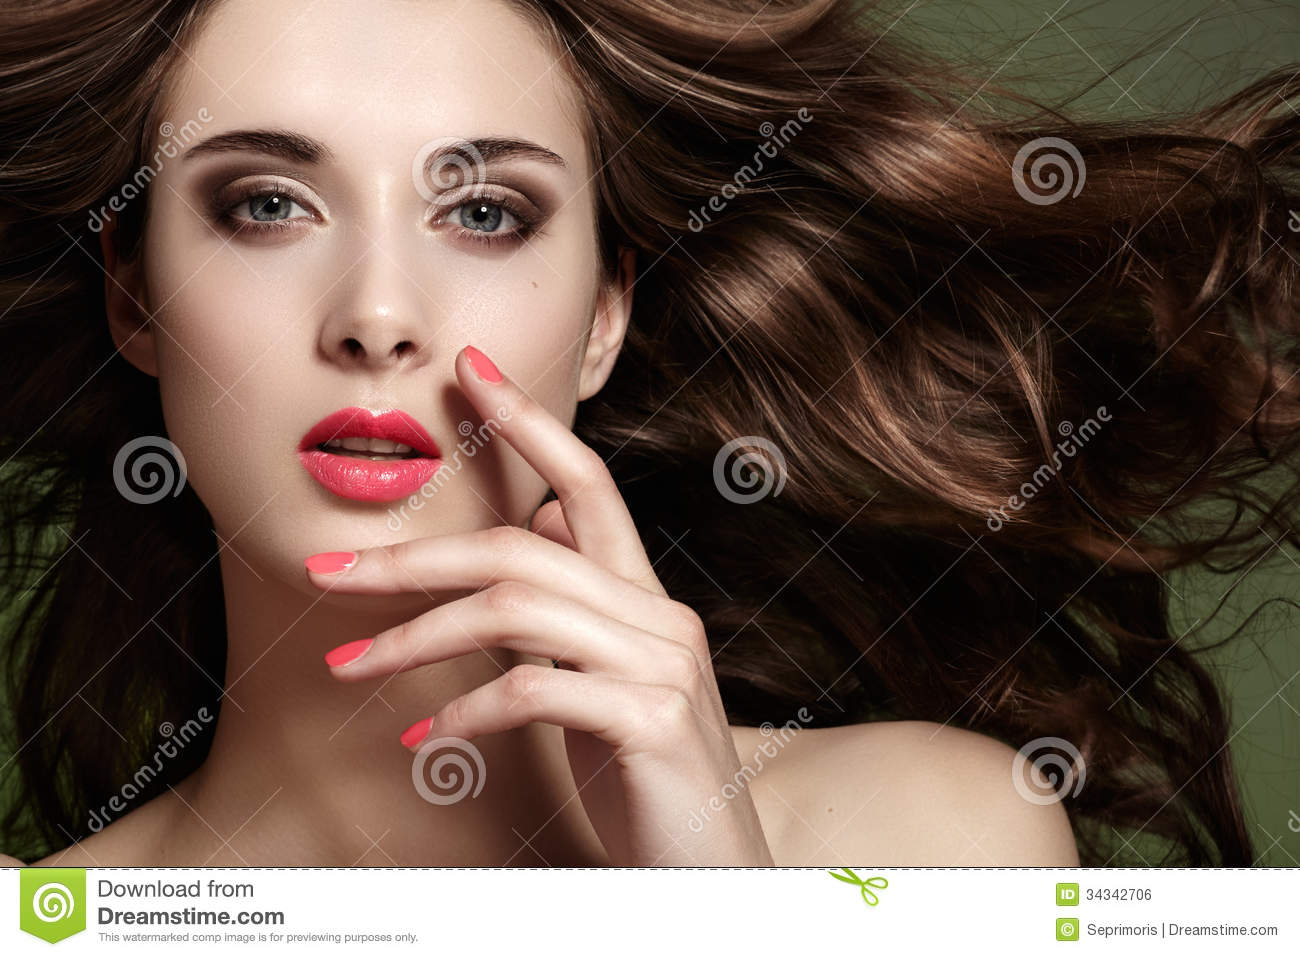 Woman with spring makeup, clean face, long hair